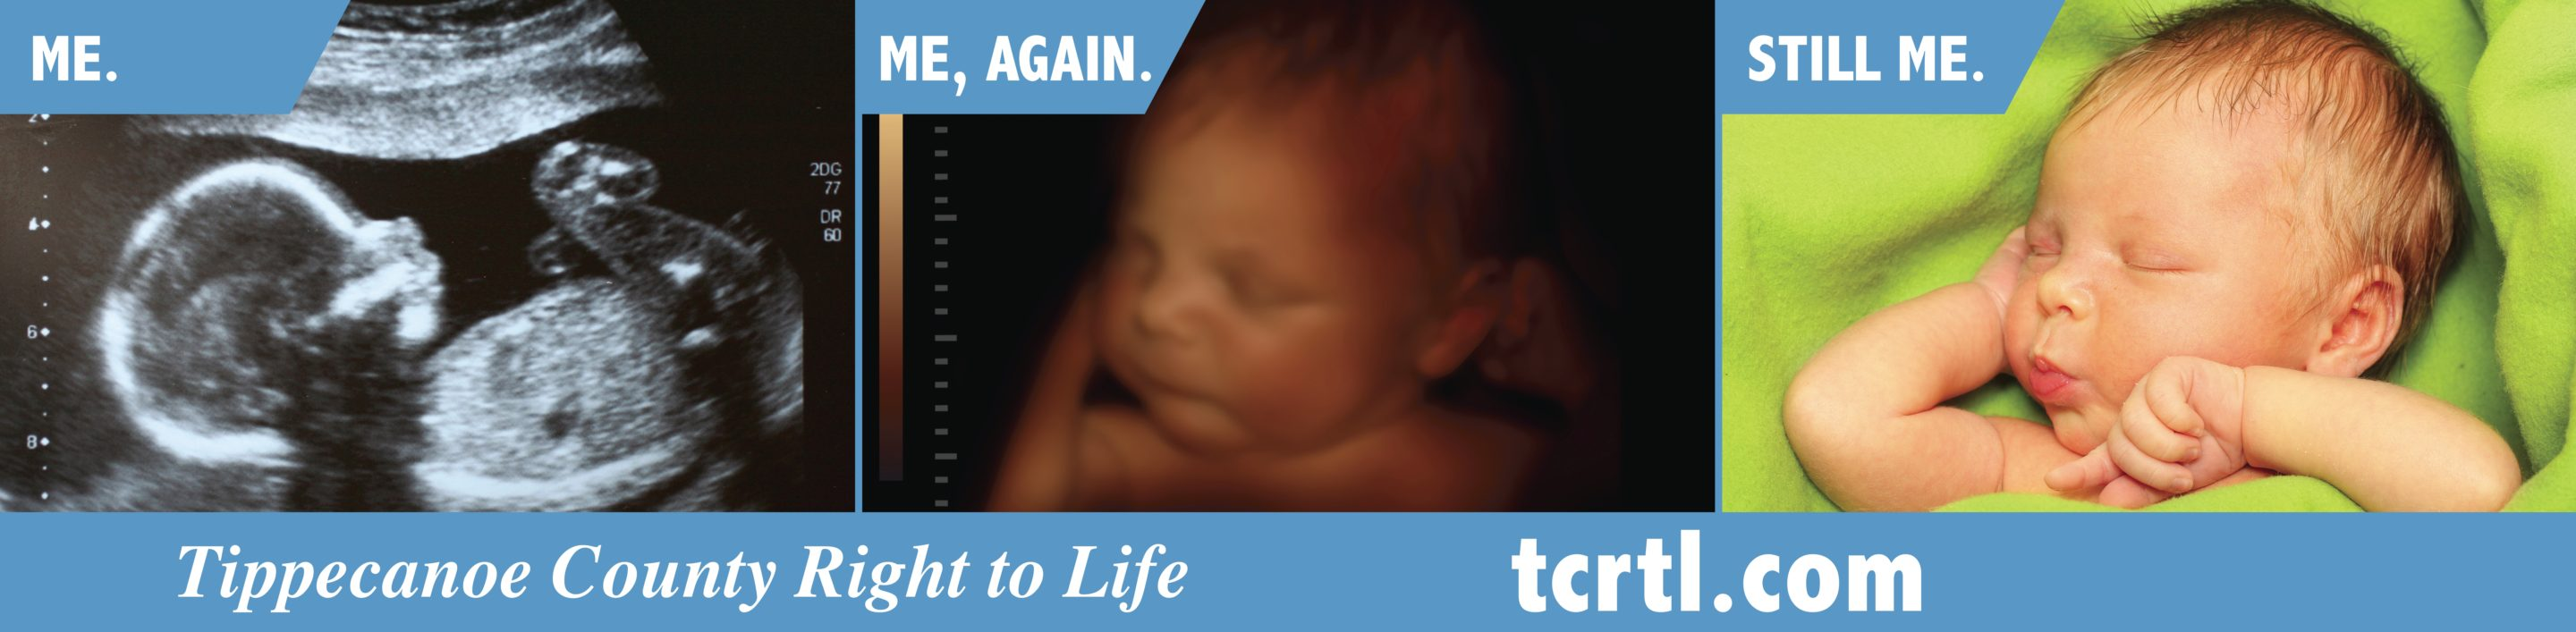 Pro-Lifers Win Legal Battle Over 'ME,' 'ME, AGAIN,' 'STILL ME' Bus Ad